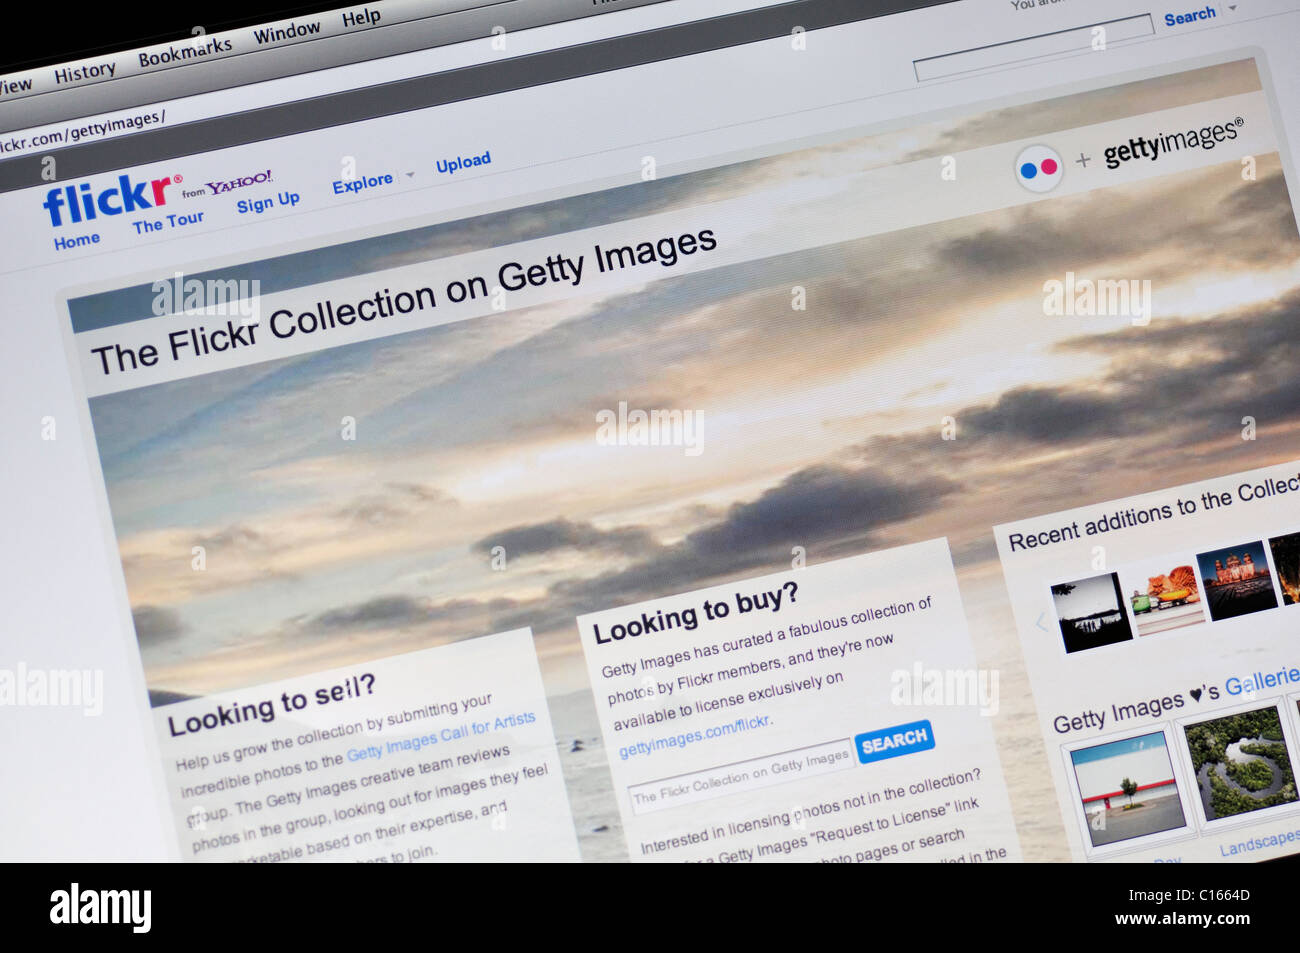 Flickr Collection on Getty Images website - Stock Image